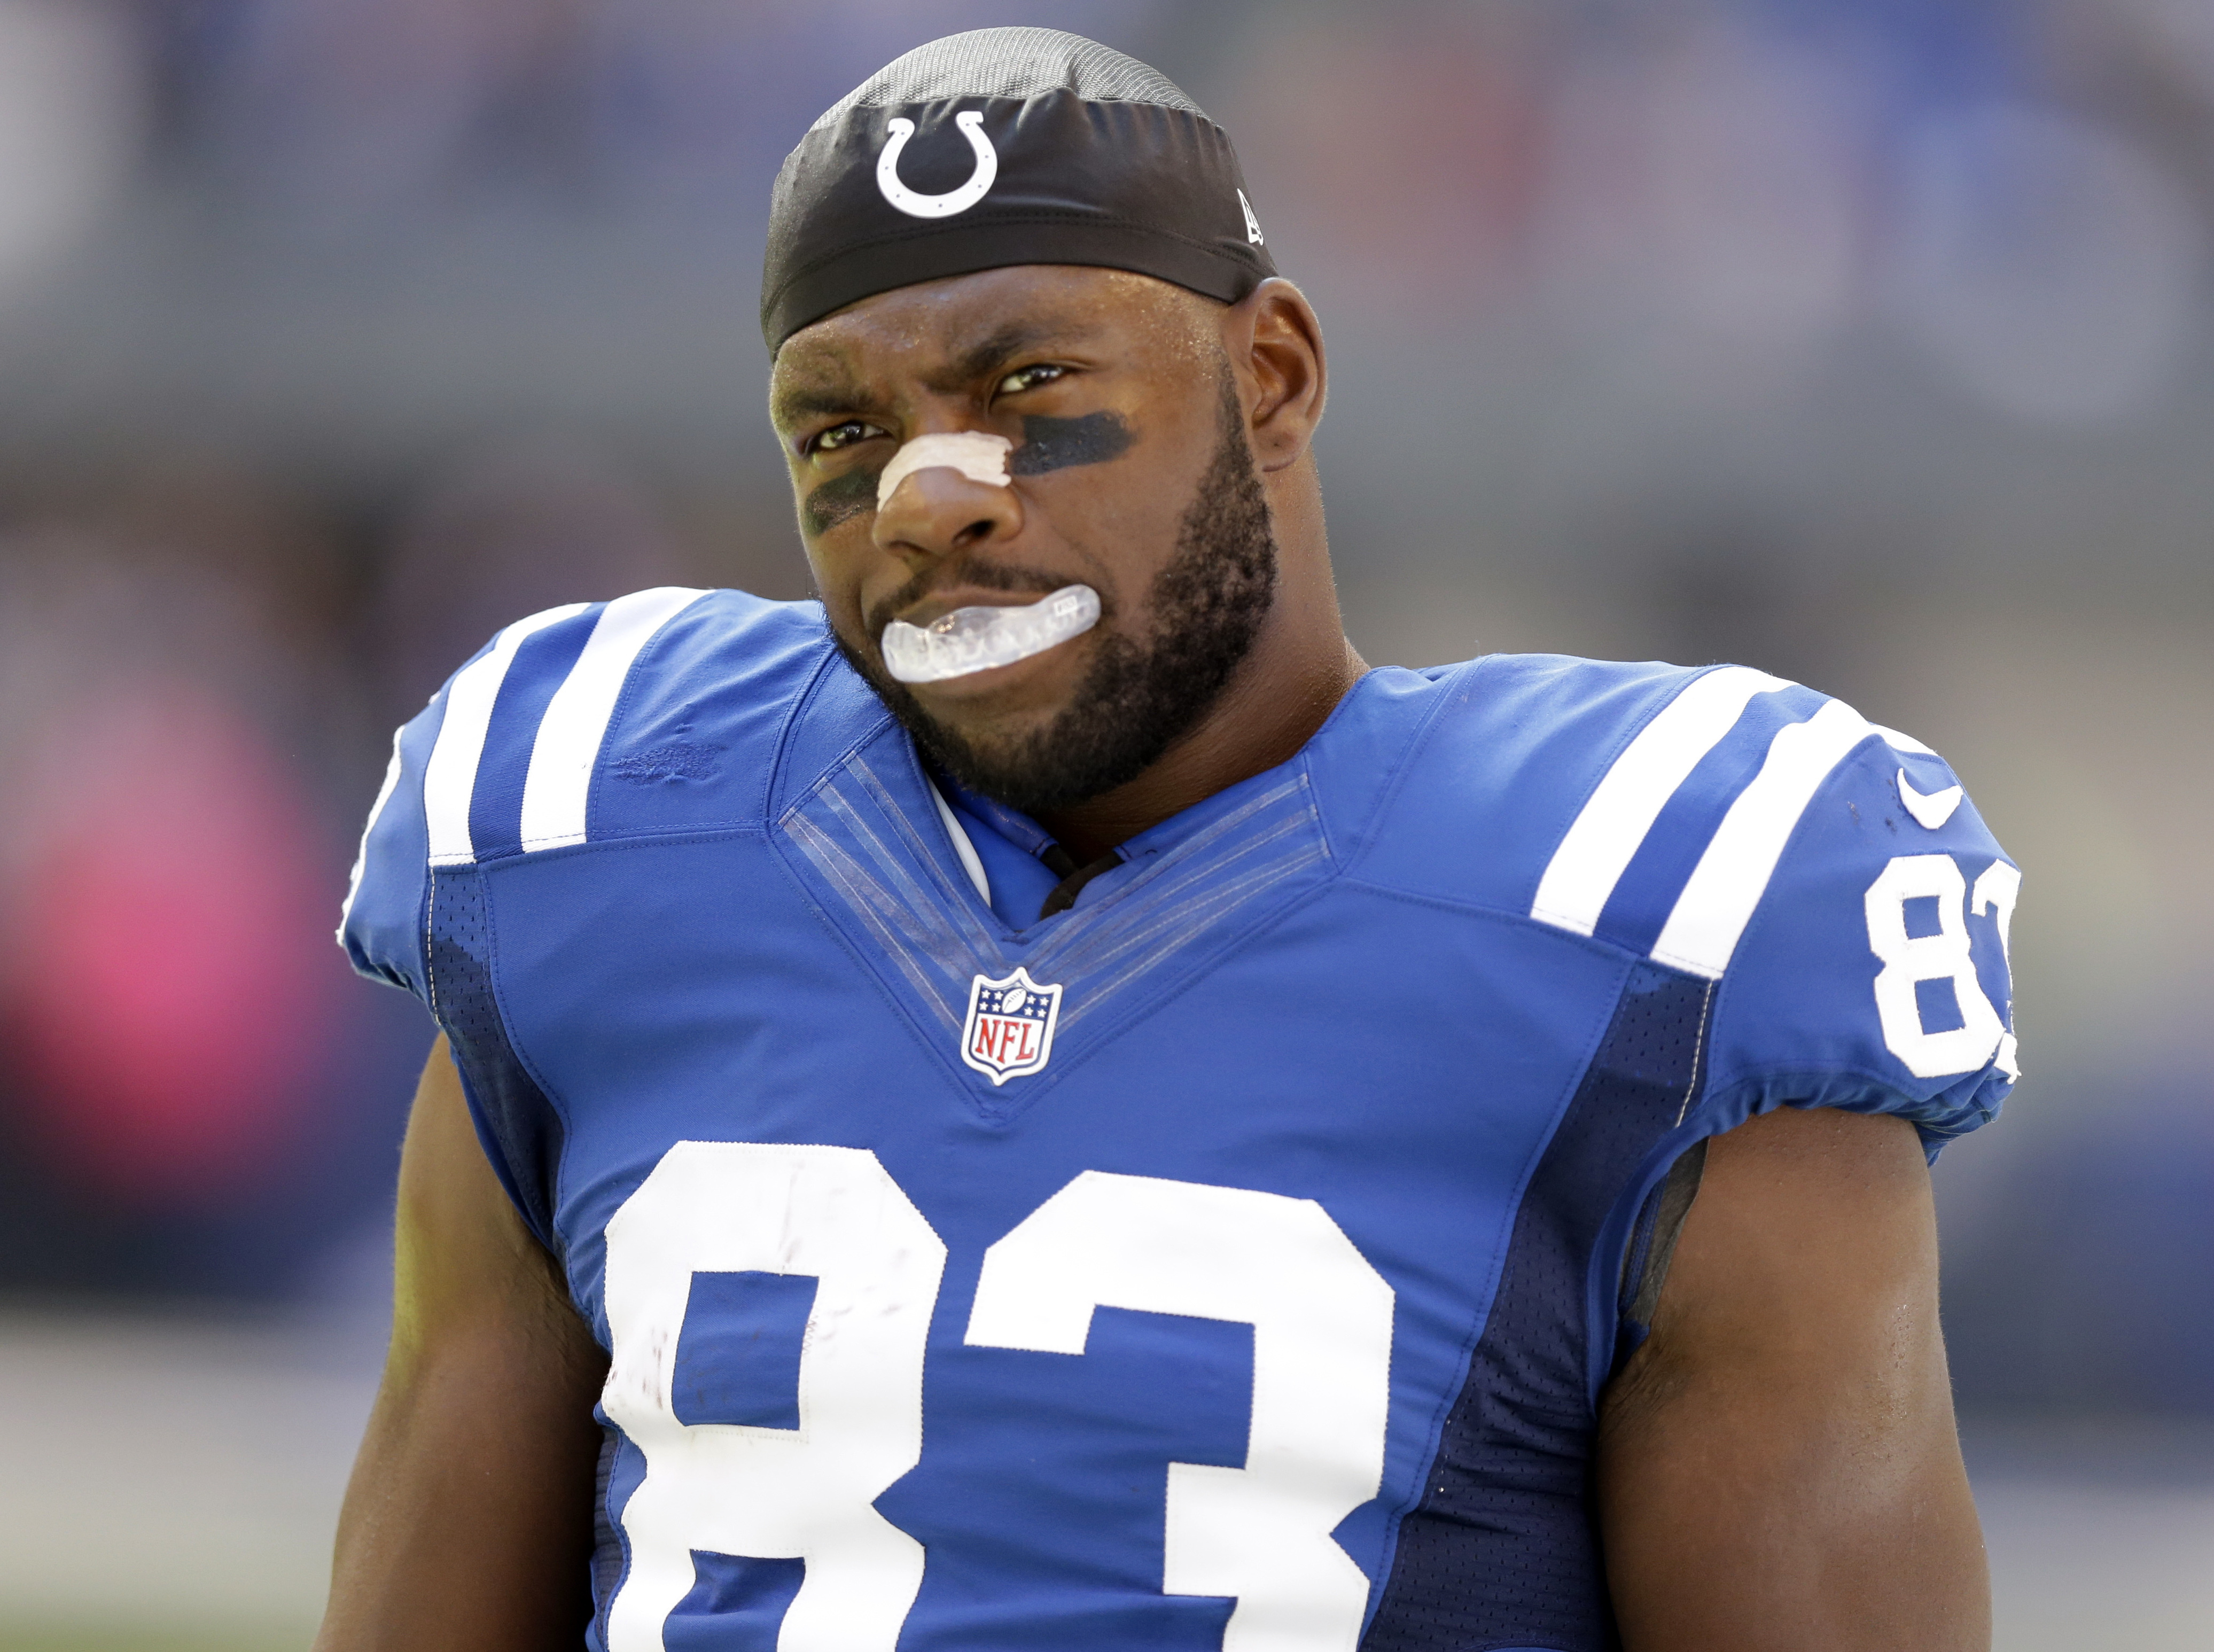 FILE - In this Sunday, Oct. 9, 2016, file photo, Indianapolis Colts tight end Dwayne Allen looks on before an NFL football game against the Chicago Bears in Indianapolis. Allen has dropped to his knee at the end of the national anthem since his rookie sea